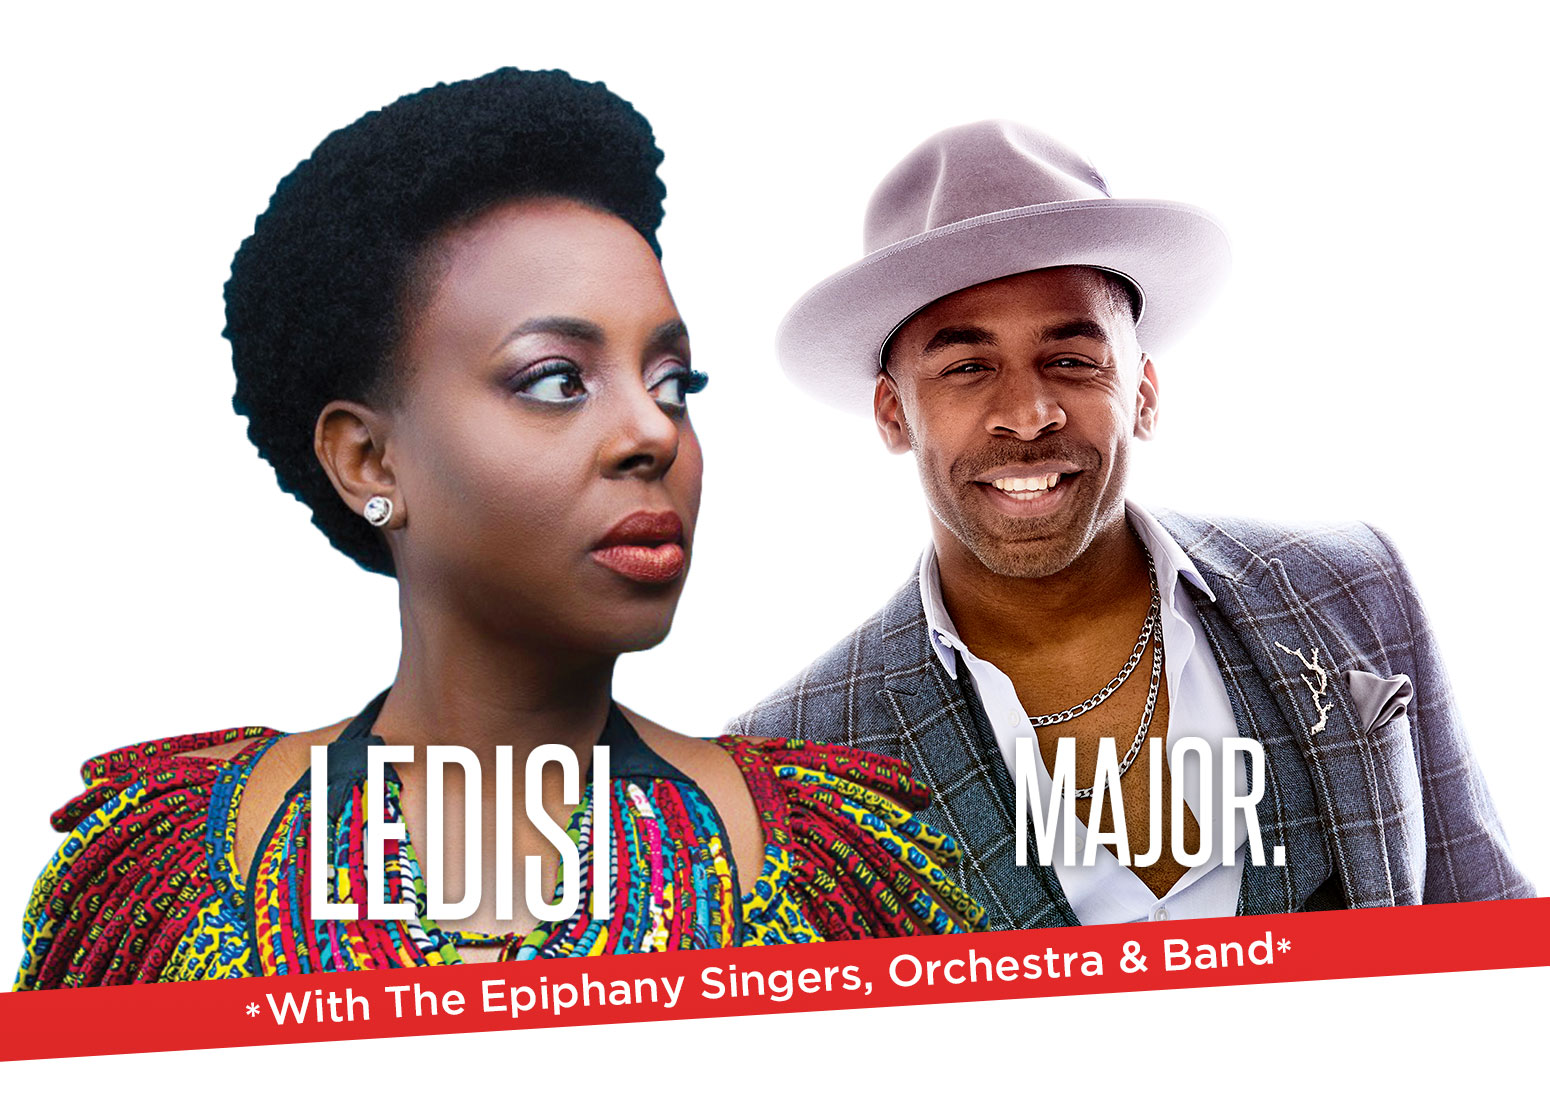 2019 Epiphany Benefit Concert - Special Musical Guests Ledisi and MAJOR.